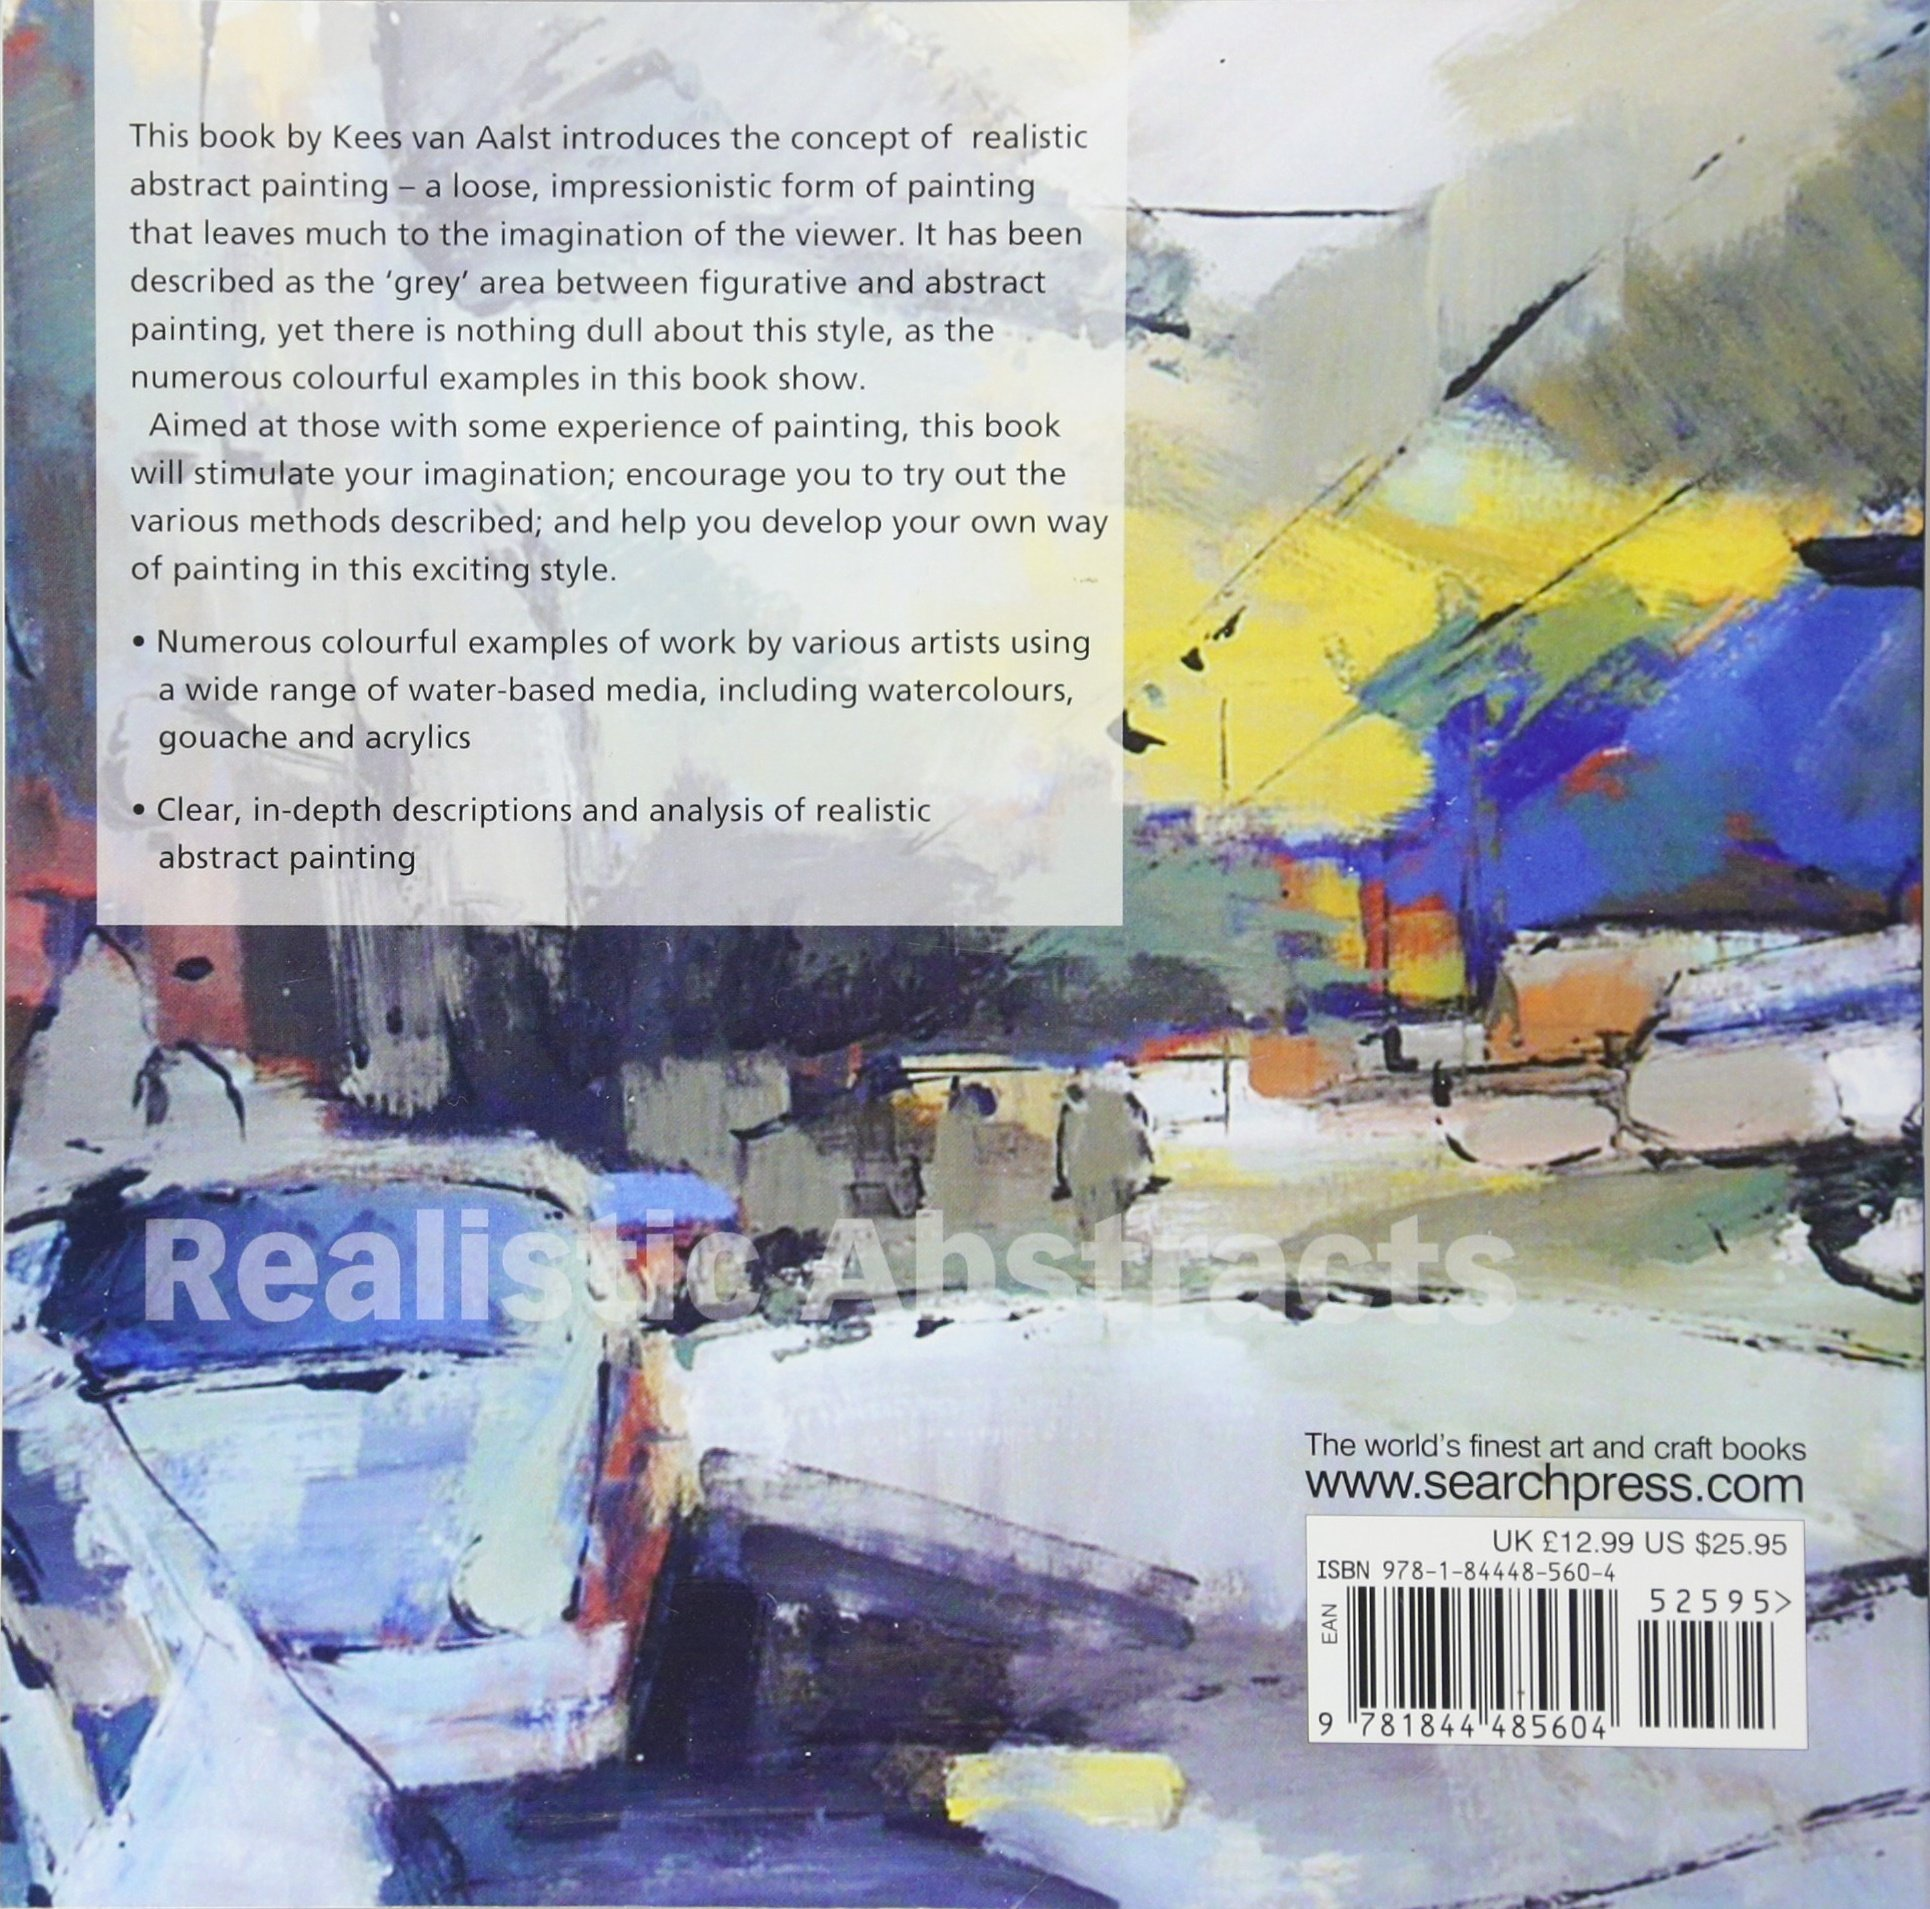 Watercolor books by search press - Realistic Abstracts Painting Abstracts Based On What You See Kees Van Aalst 8601404320828 Amazon Com Books